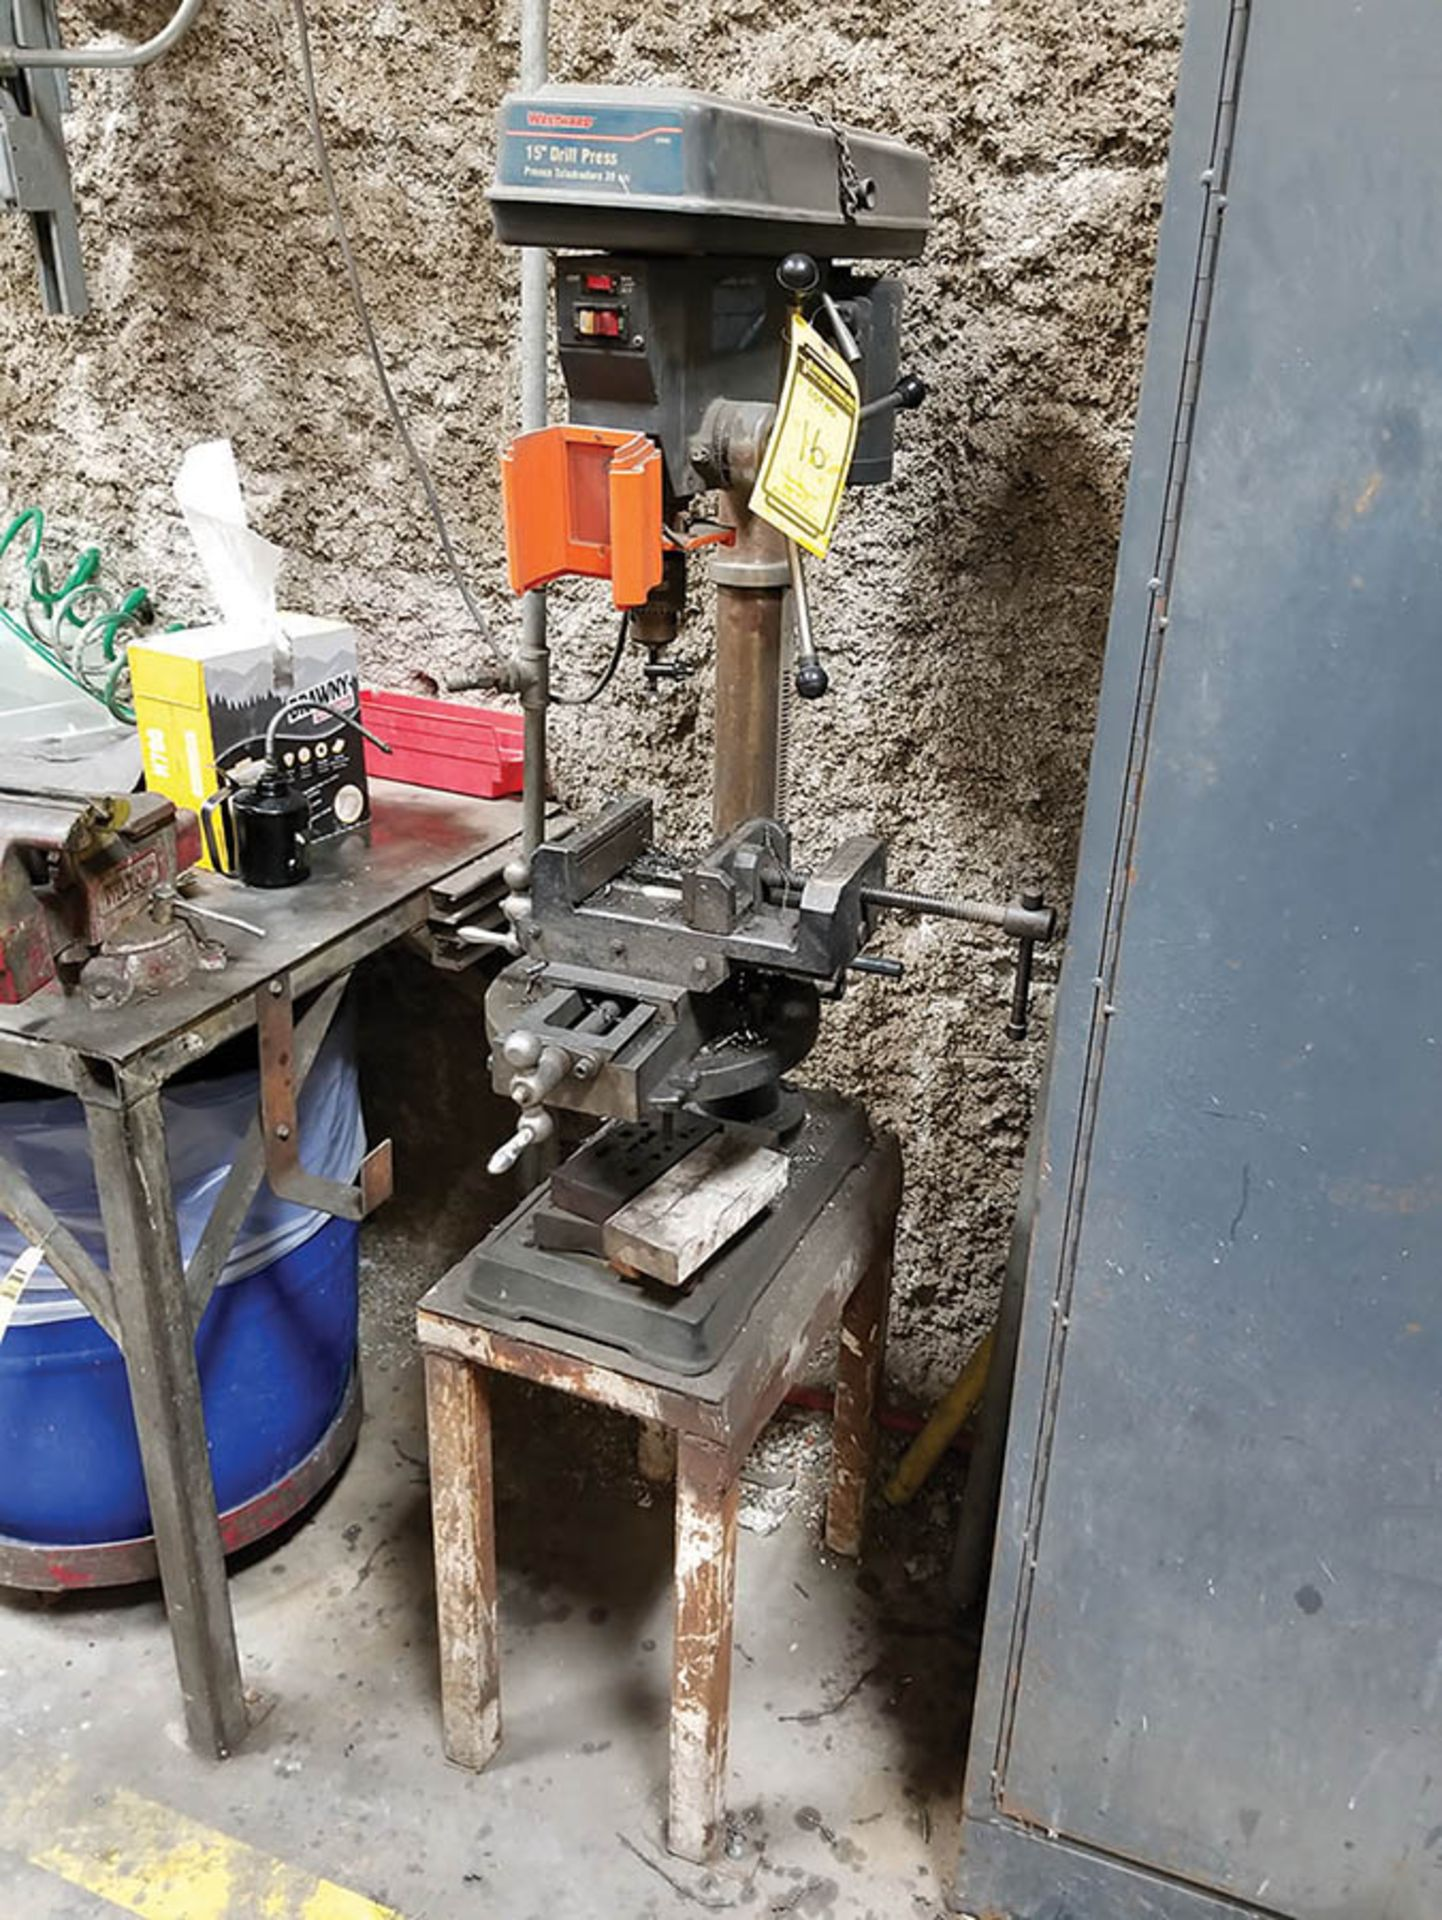 Lot 16 - WESTWARD 15'' VERTICAL DRILL PRESS, 1 1/2 HP, 250-3100 RPM, 12'' DIA. TABLE WITH (2) AXIS 6''